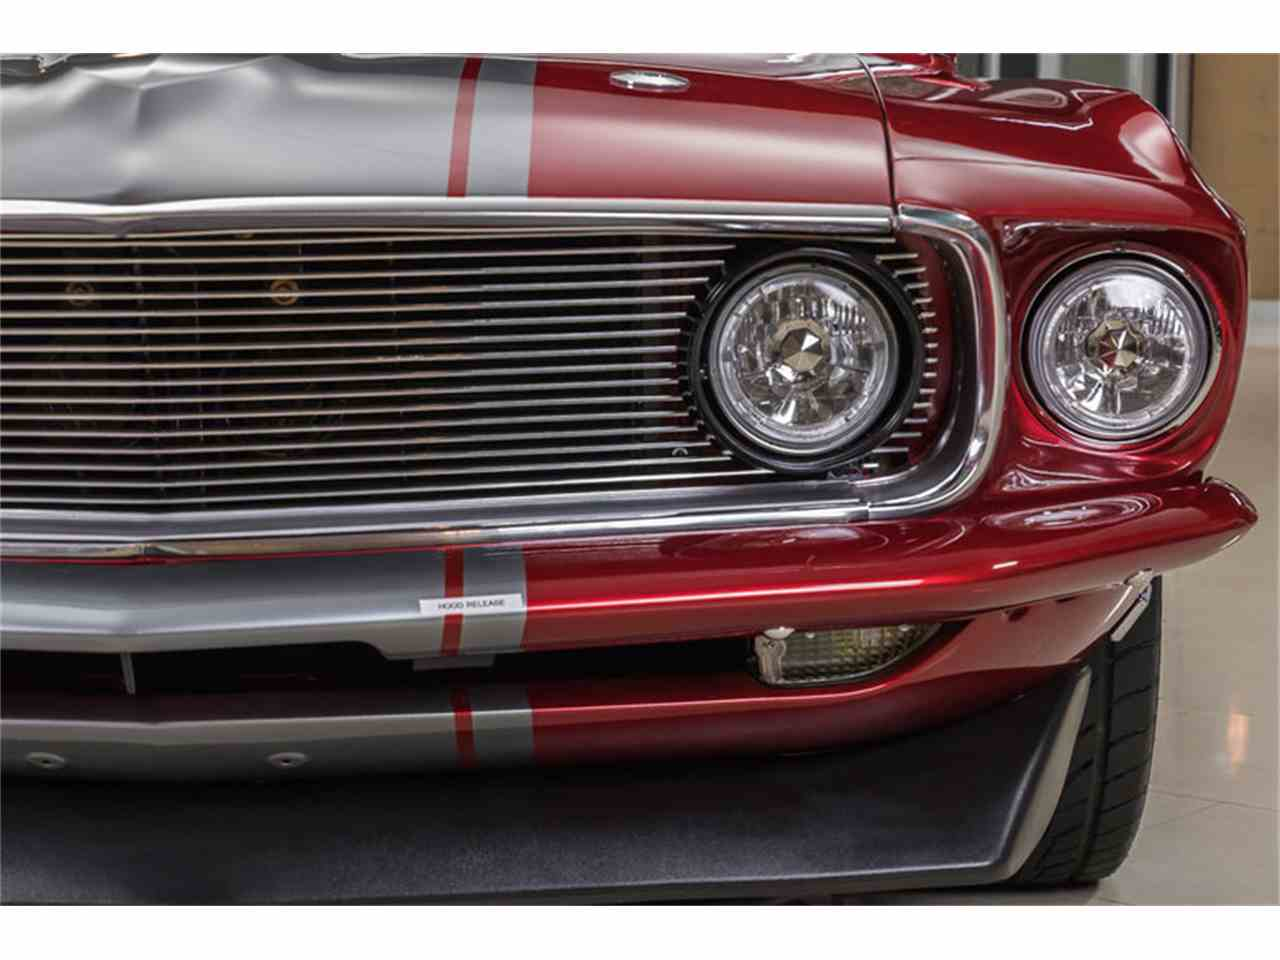 Picture of 1969 ford mustang fastback exterior - Photo 26